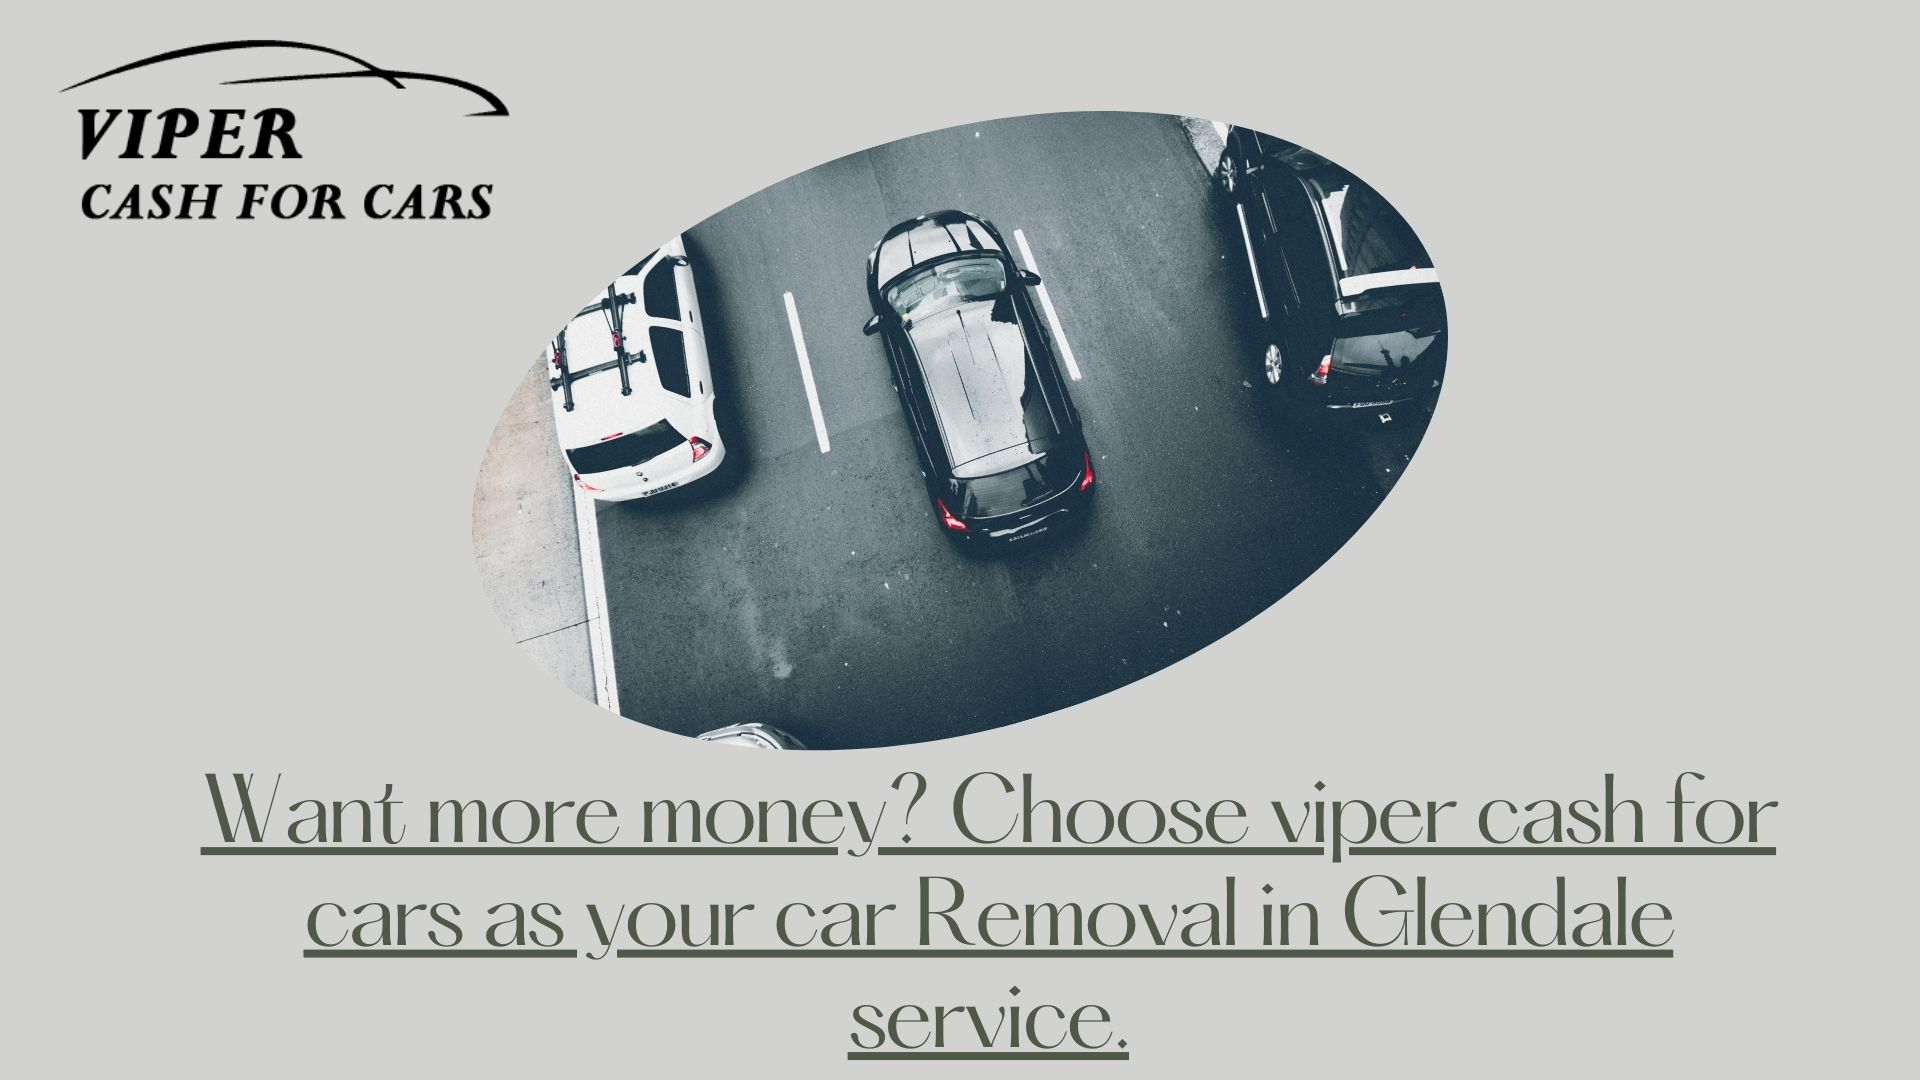 Want more money? Choose viper cash for cars as your car Removal in Glendale service.